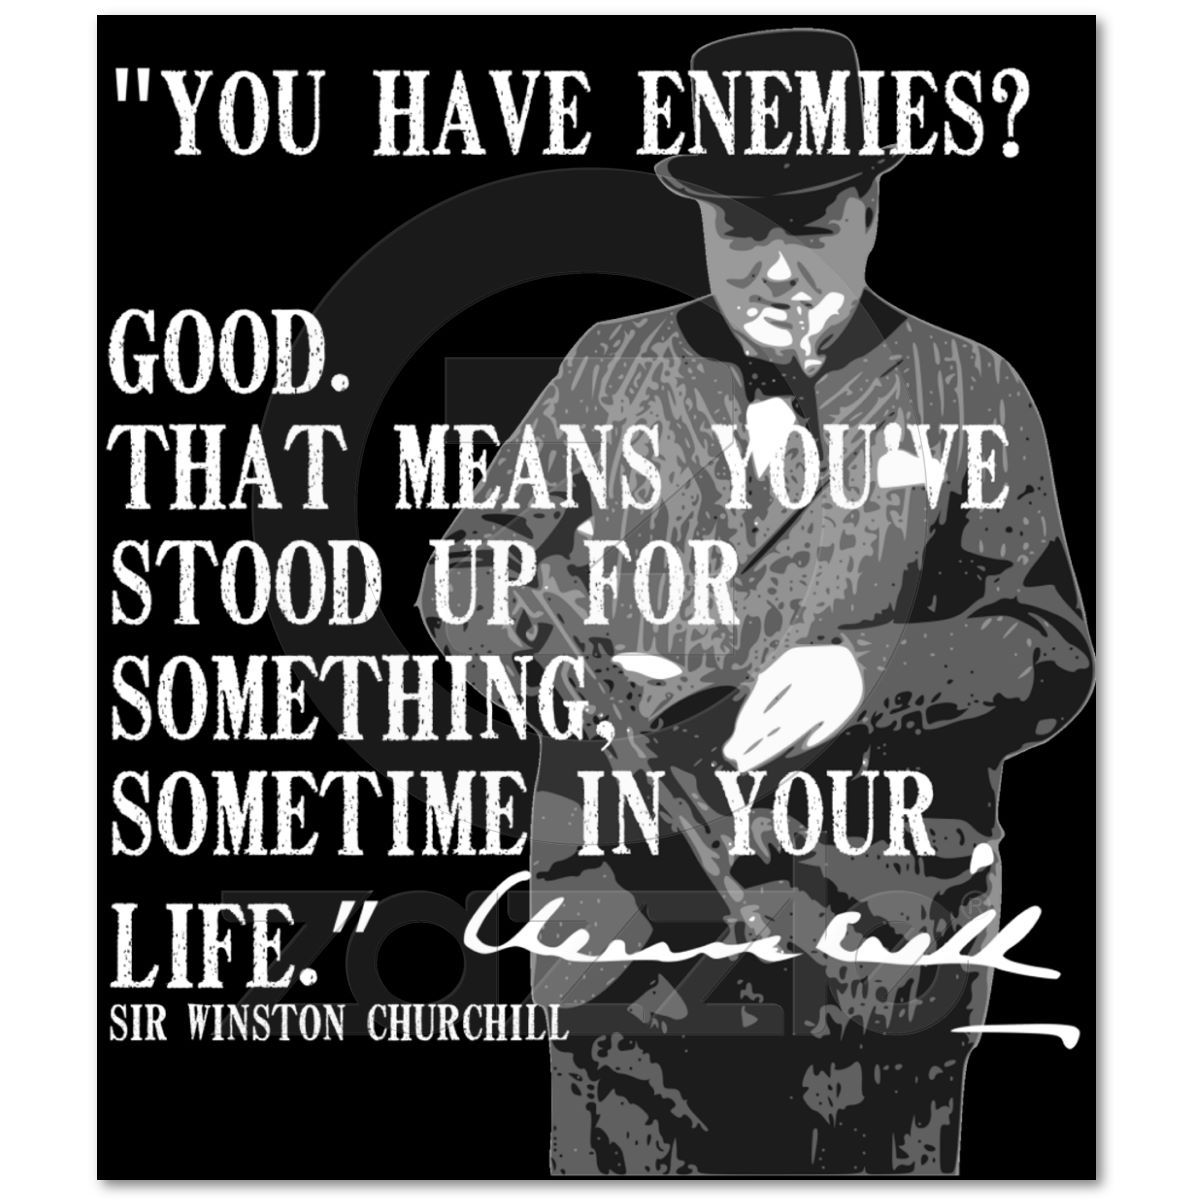 another great one from Winston Churchill - reminds me of law school (or all higher education as a republican!!)